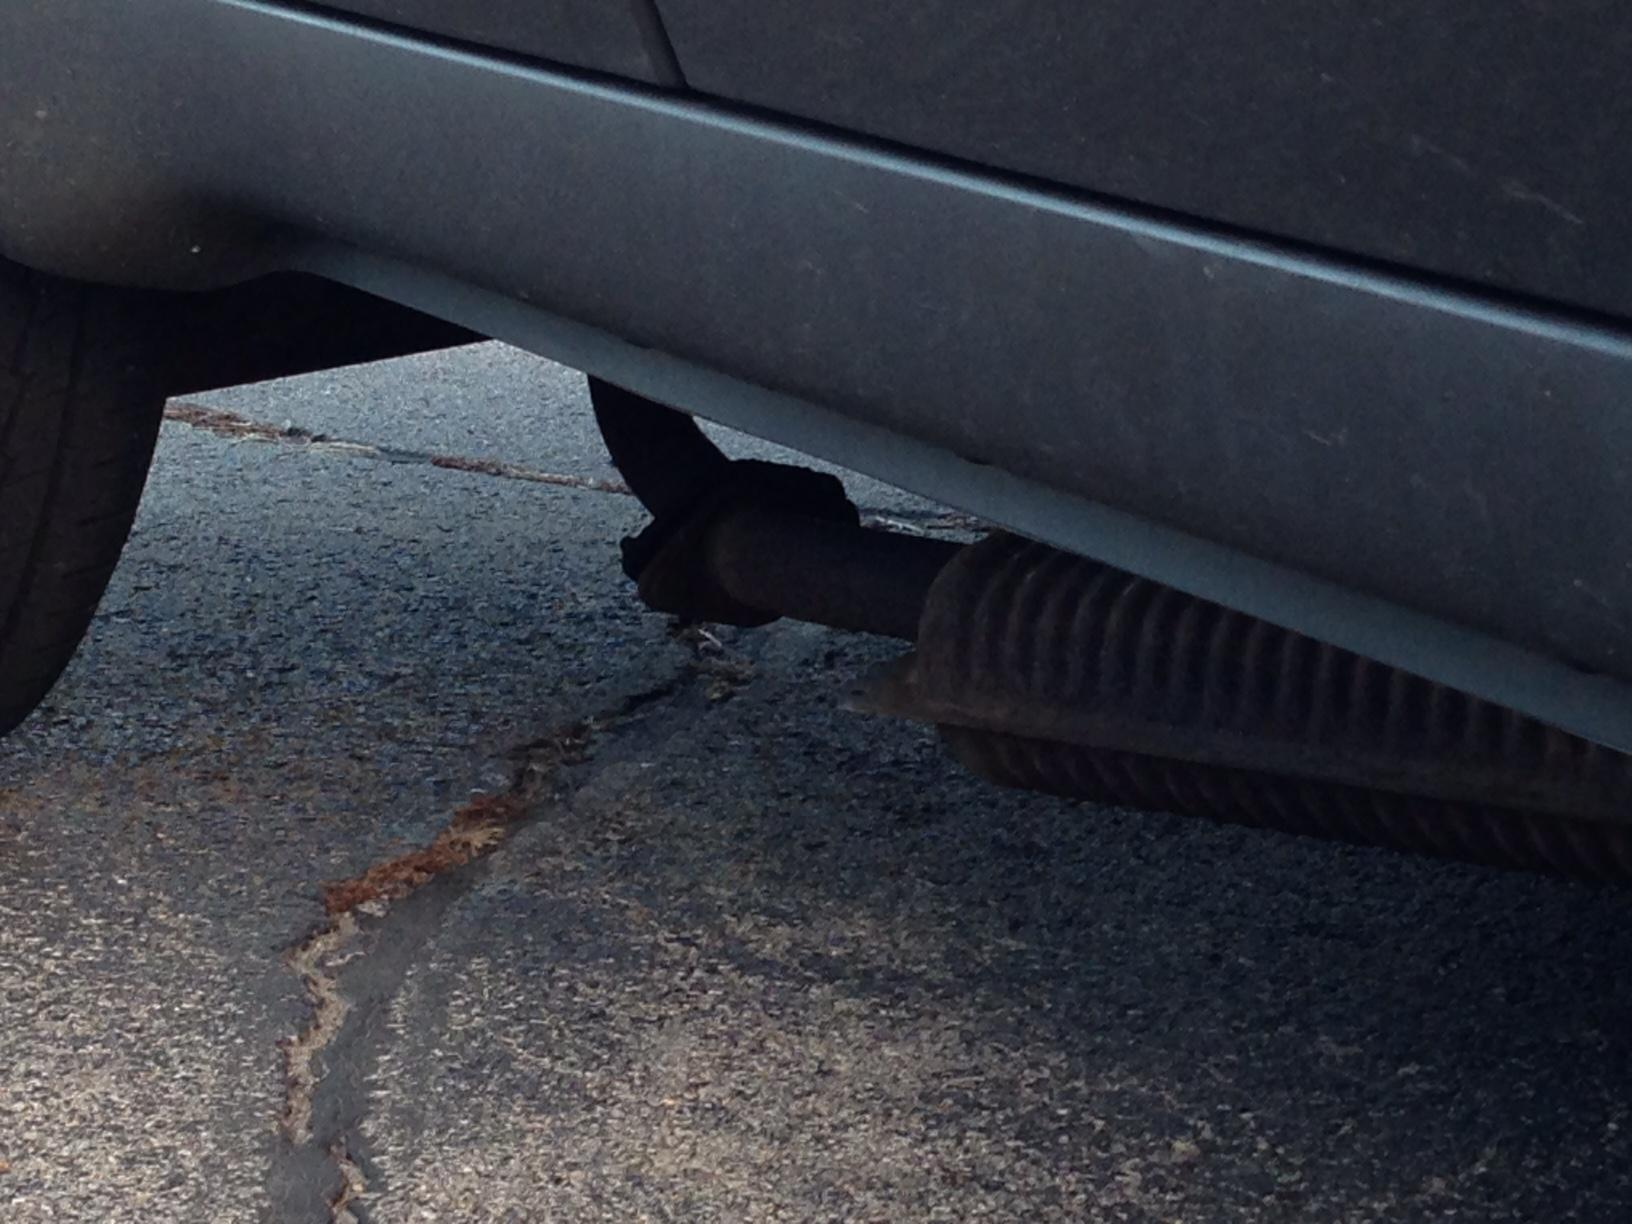 Catalytic Converter Shop Near Me >> Thing hanging down under car, what happened? — Car Forums ...